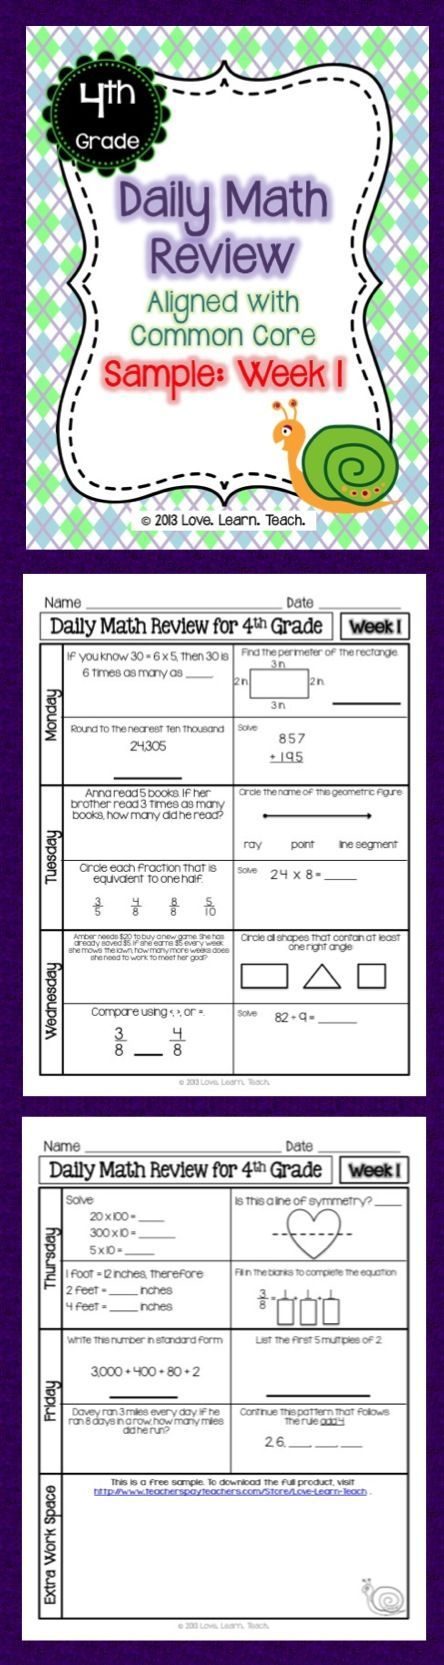 FREE 1-week sample of spiral Daily Math Review for 4th grade - sample fact sheets